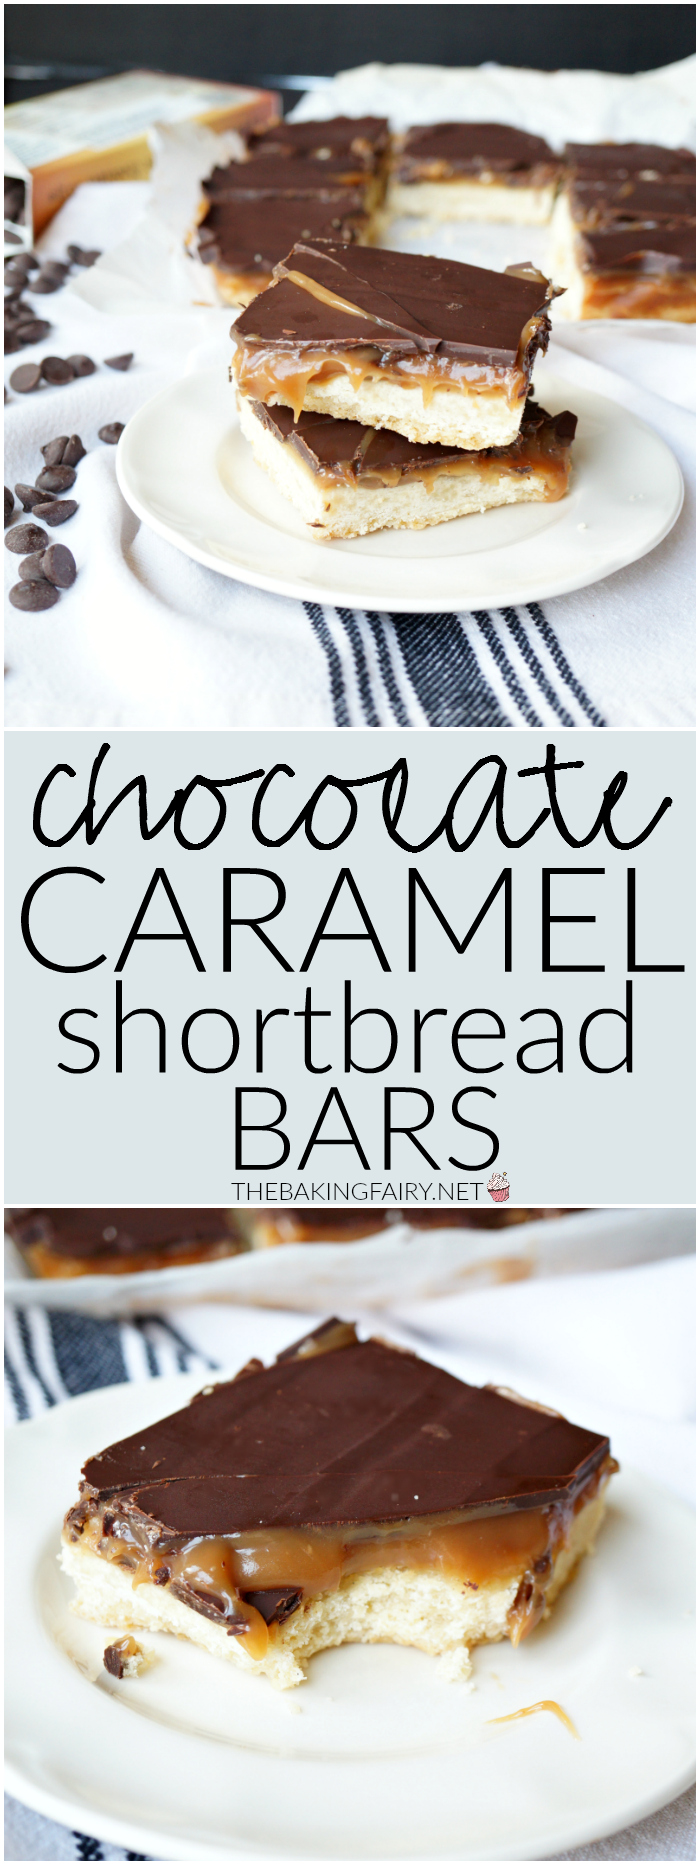 chocolate caramel shortbread bars | The Baking Fairy